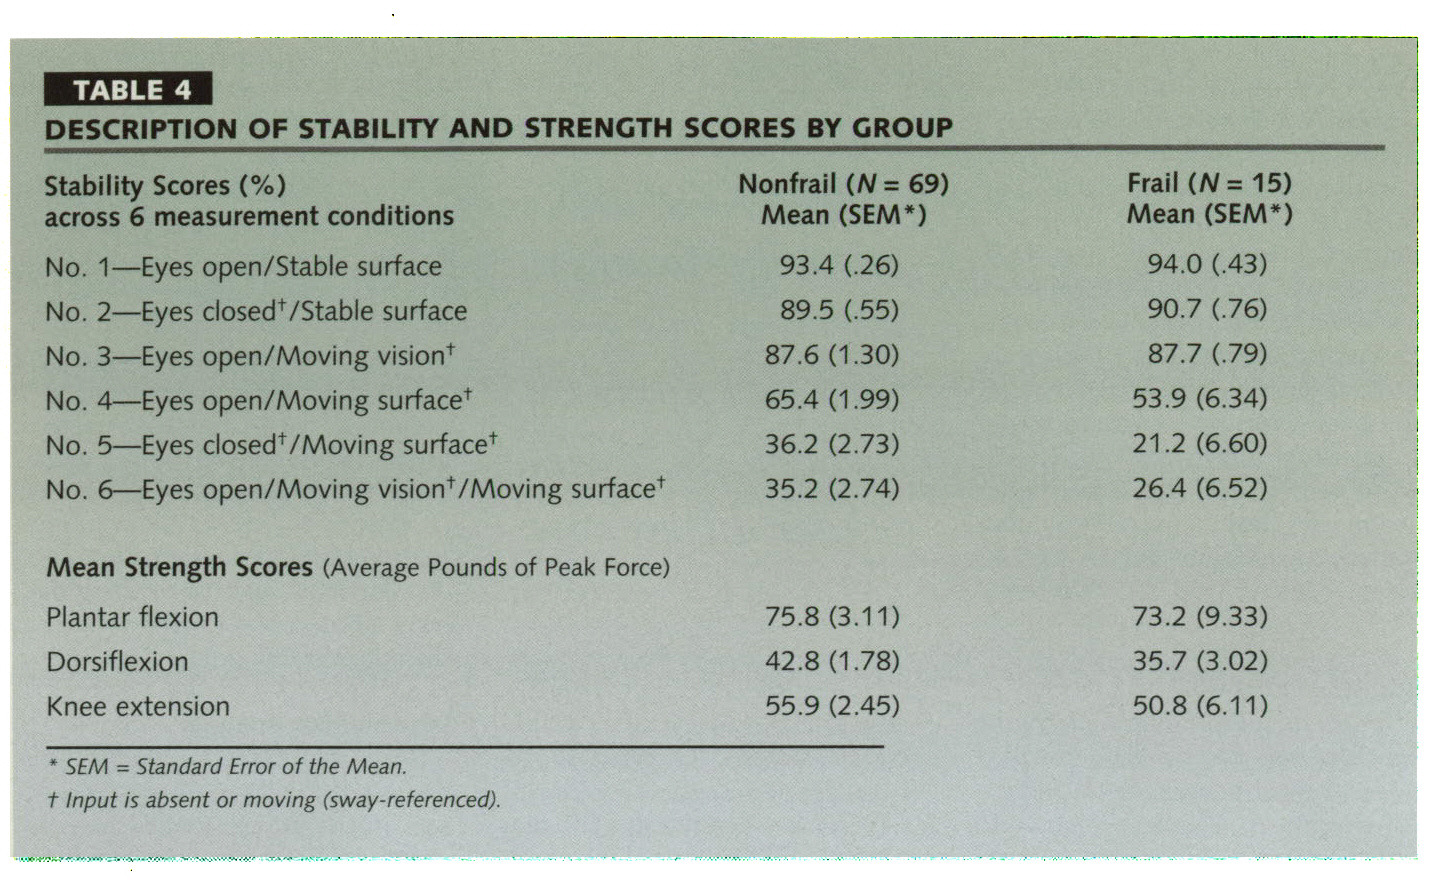 TABLE 4DESCRIPTION OF STABILITY AND STRENGTH SCORES BY GROUP